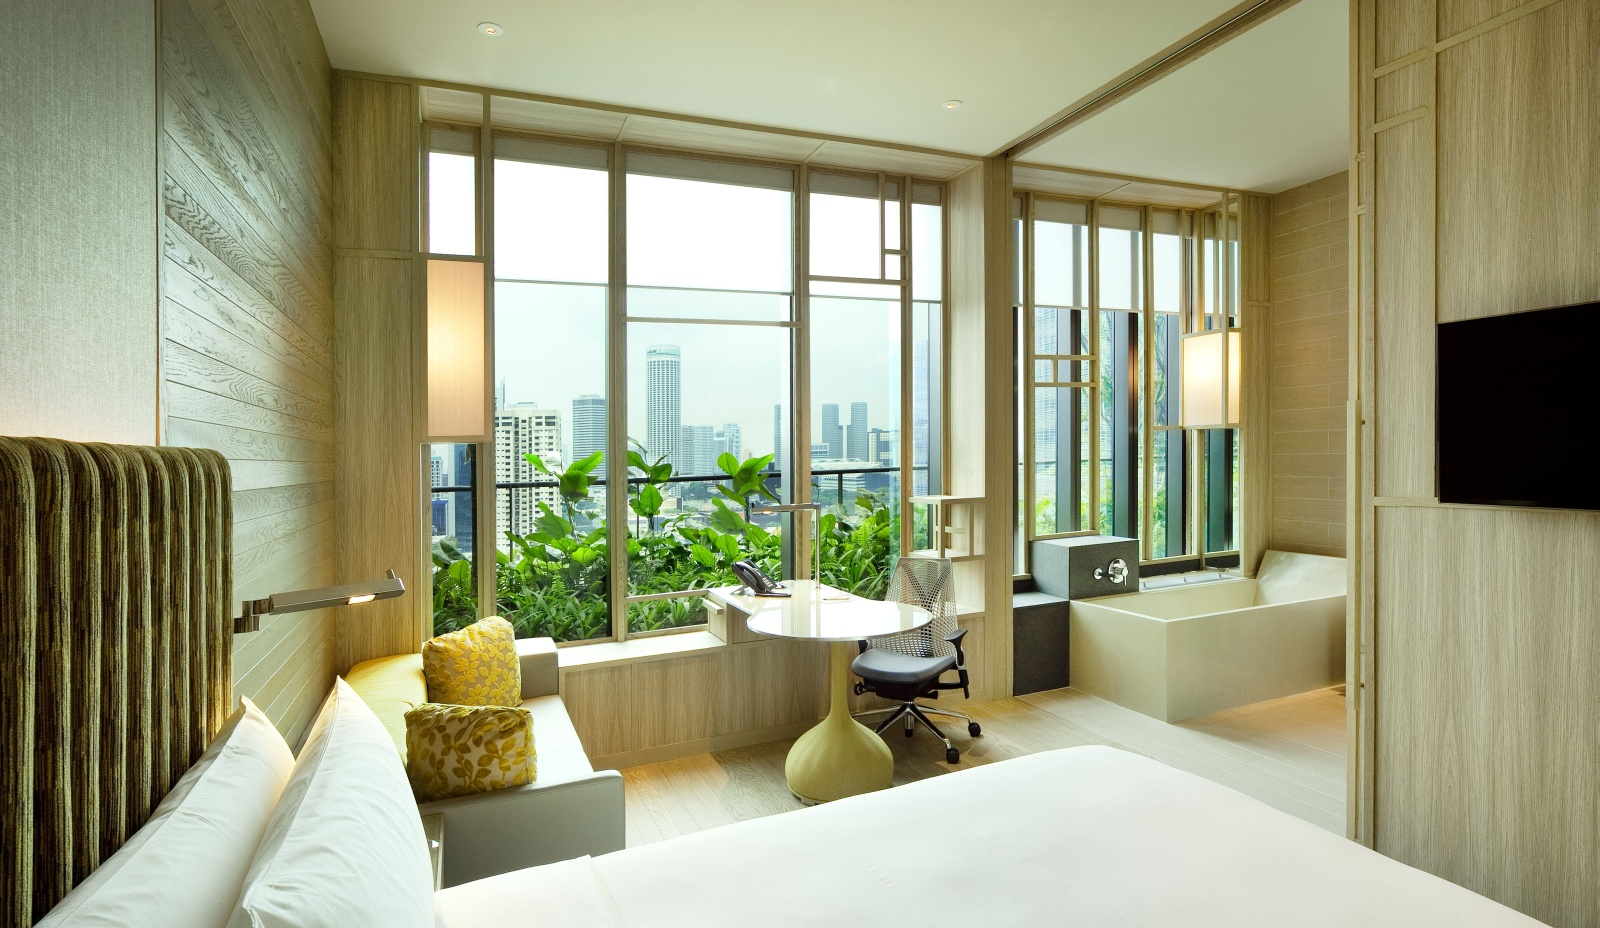 Luxury Hotel Park Royal Singapore 7 luxury hotel Park Royal Hotel: the luxury hotel you can't miss in your bucket list Luxury Hotel Park Royal Singapore 7